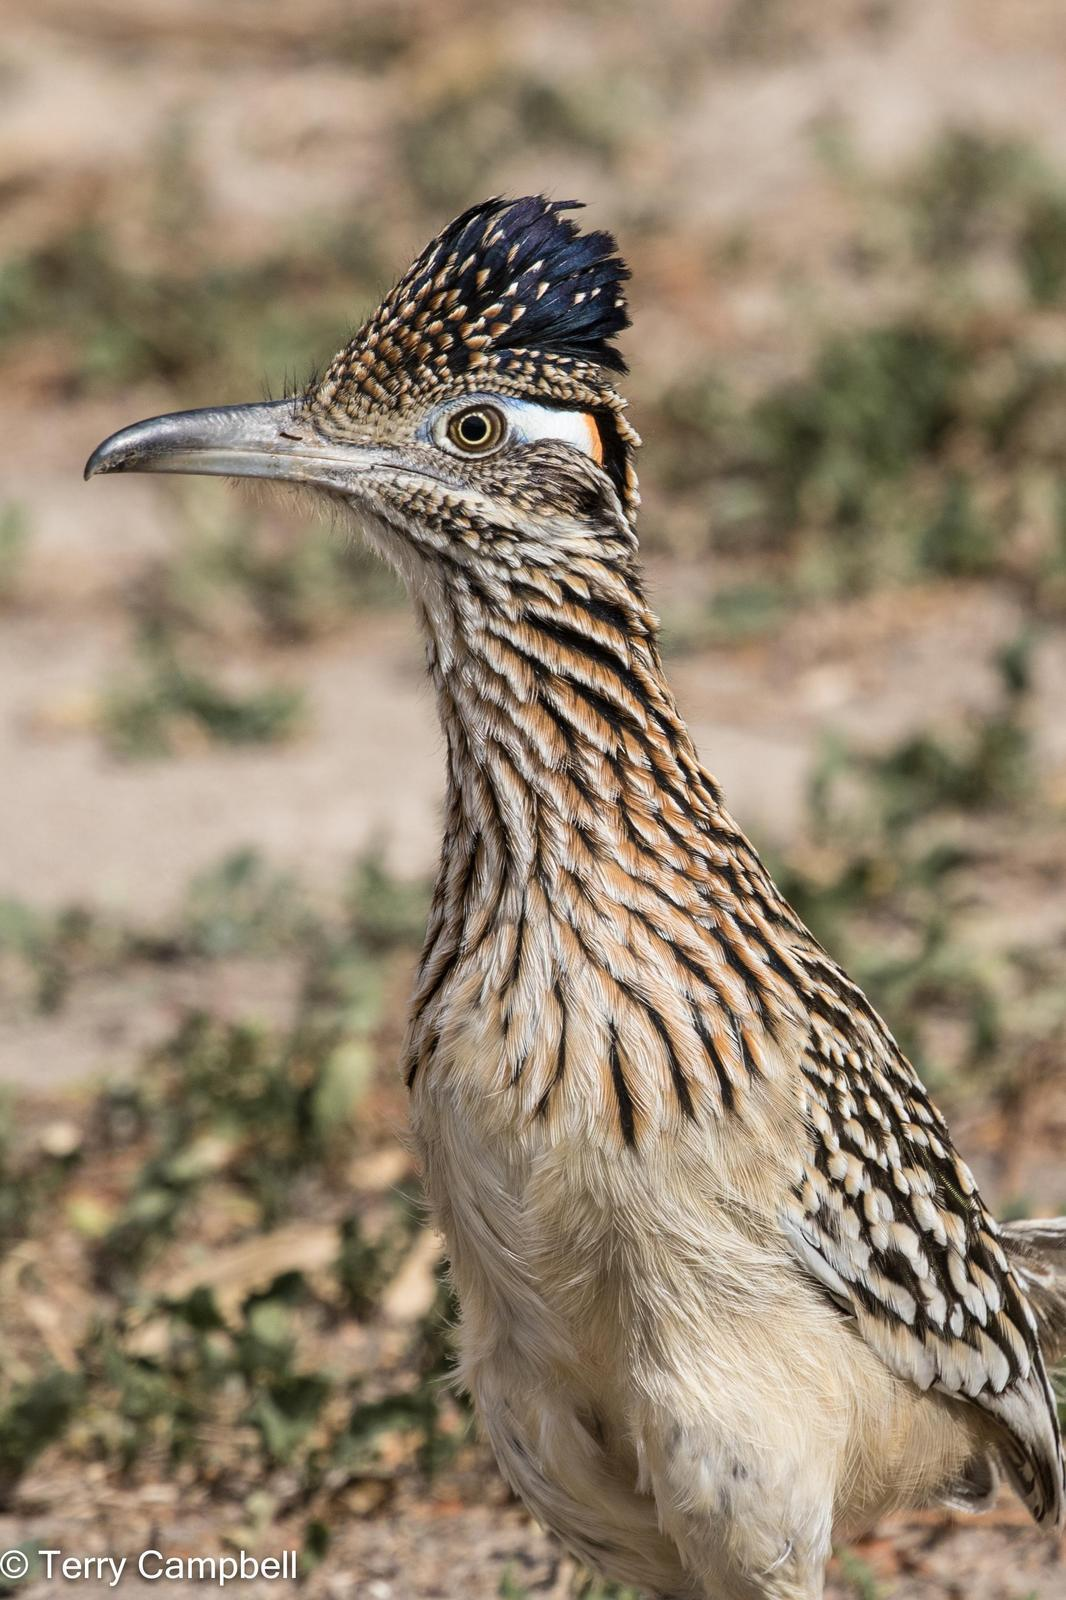 Greater Roadrunner Photo by Terry Campbell